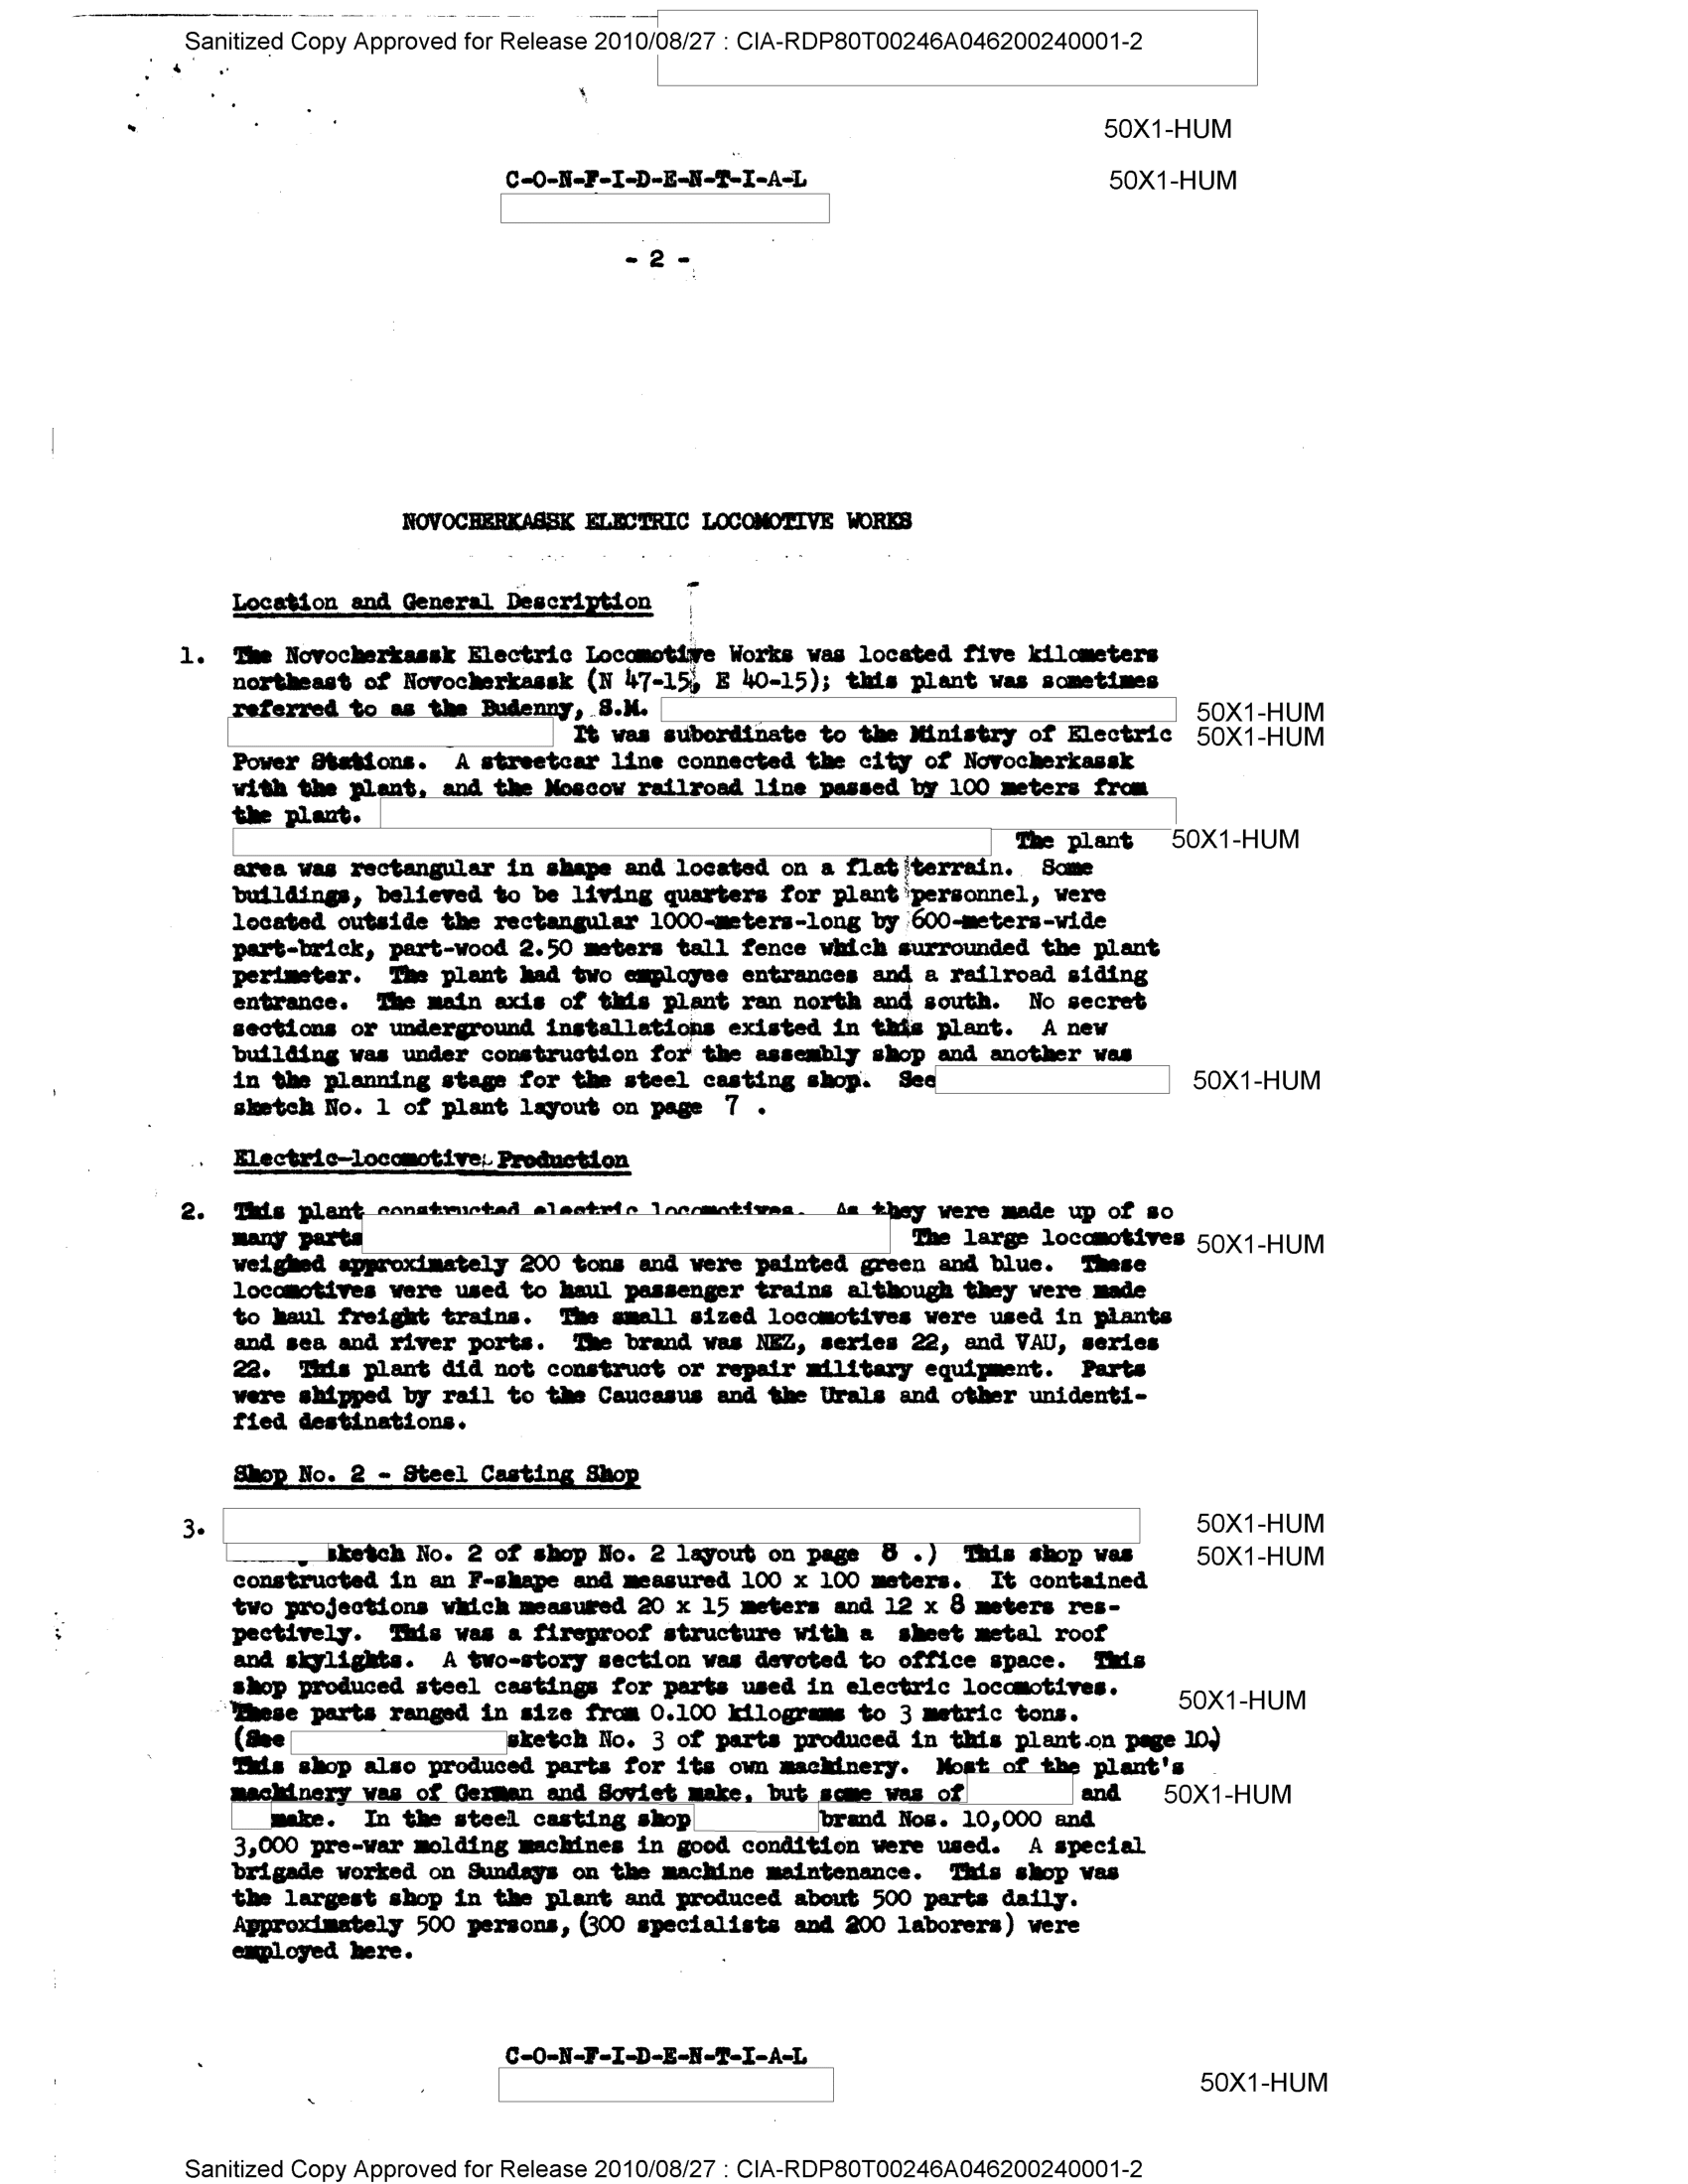 CIA-RDP80T00246A046200240001-2-04.png